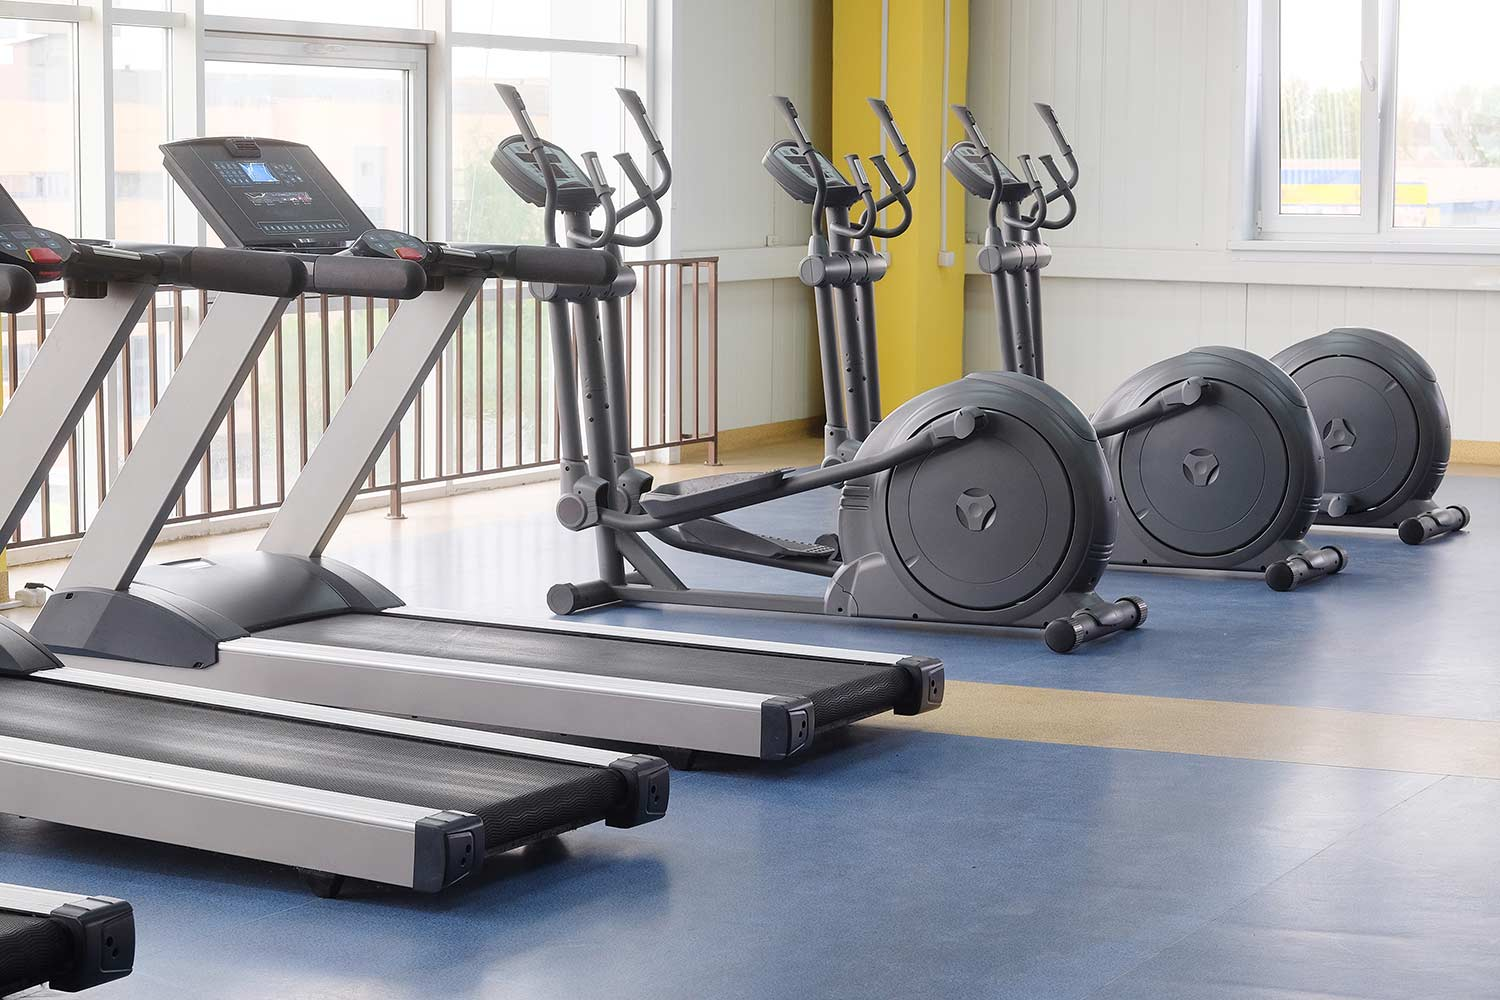 treadmill vs elliptical fitness machine